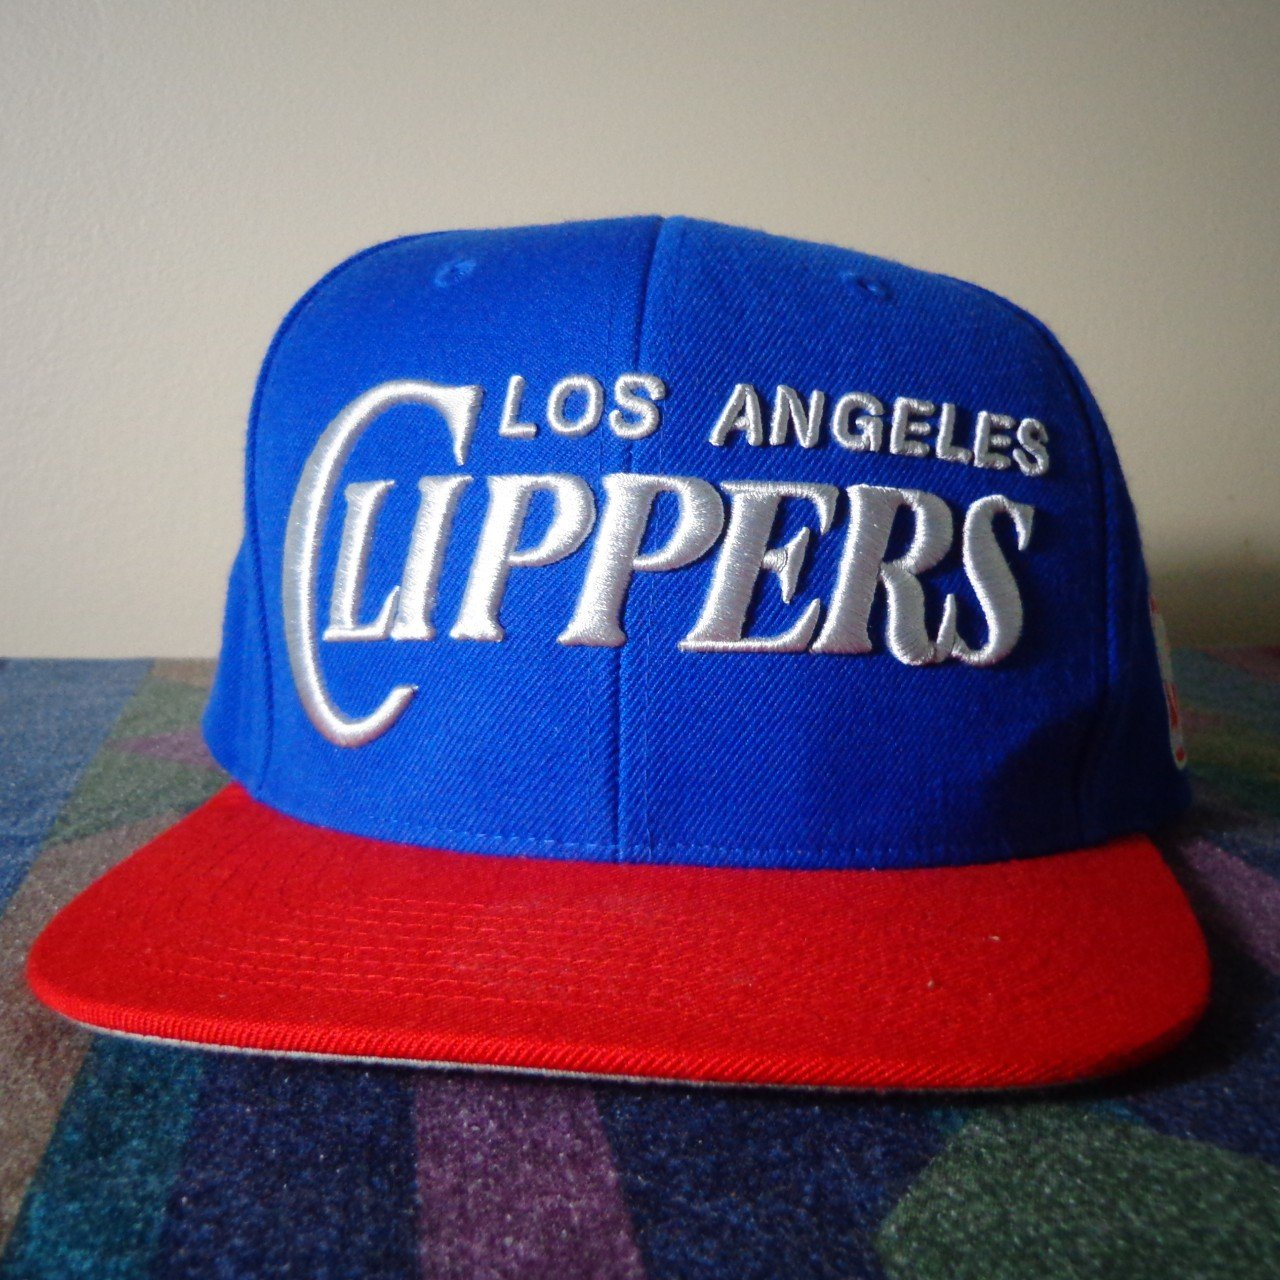 c91f1d0c478 Los Angeles Clippers Snapback Hat Mitchell and Ness - Depop